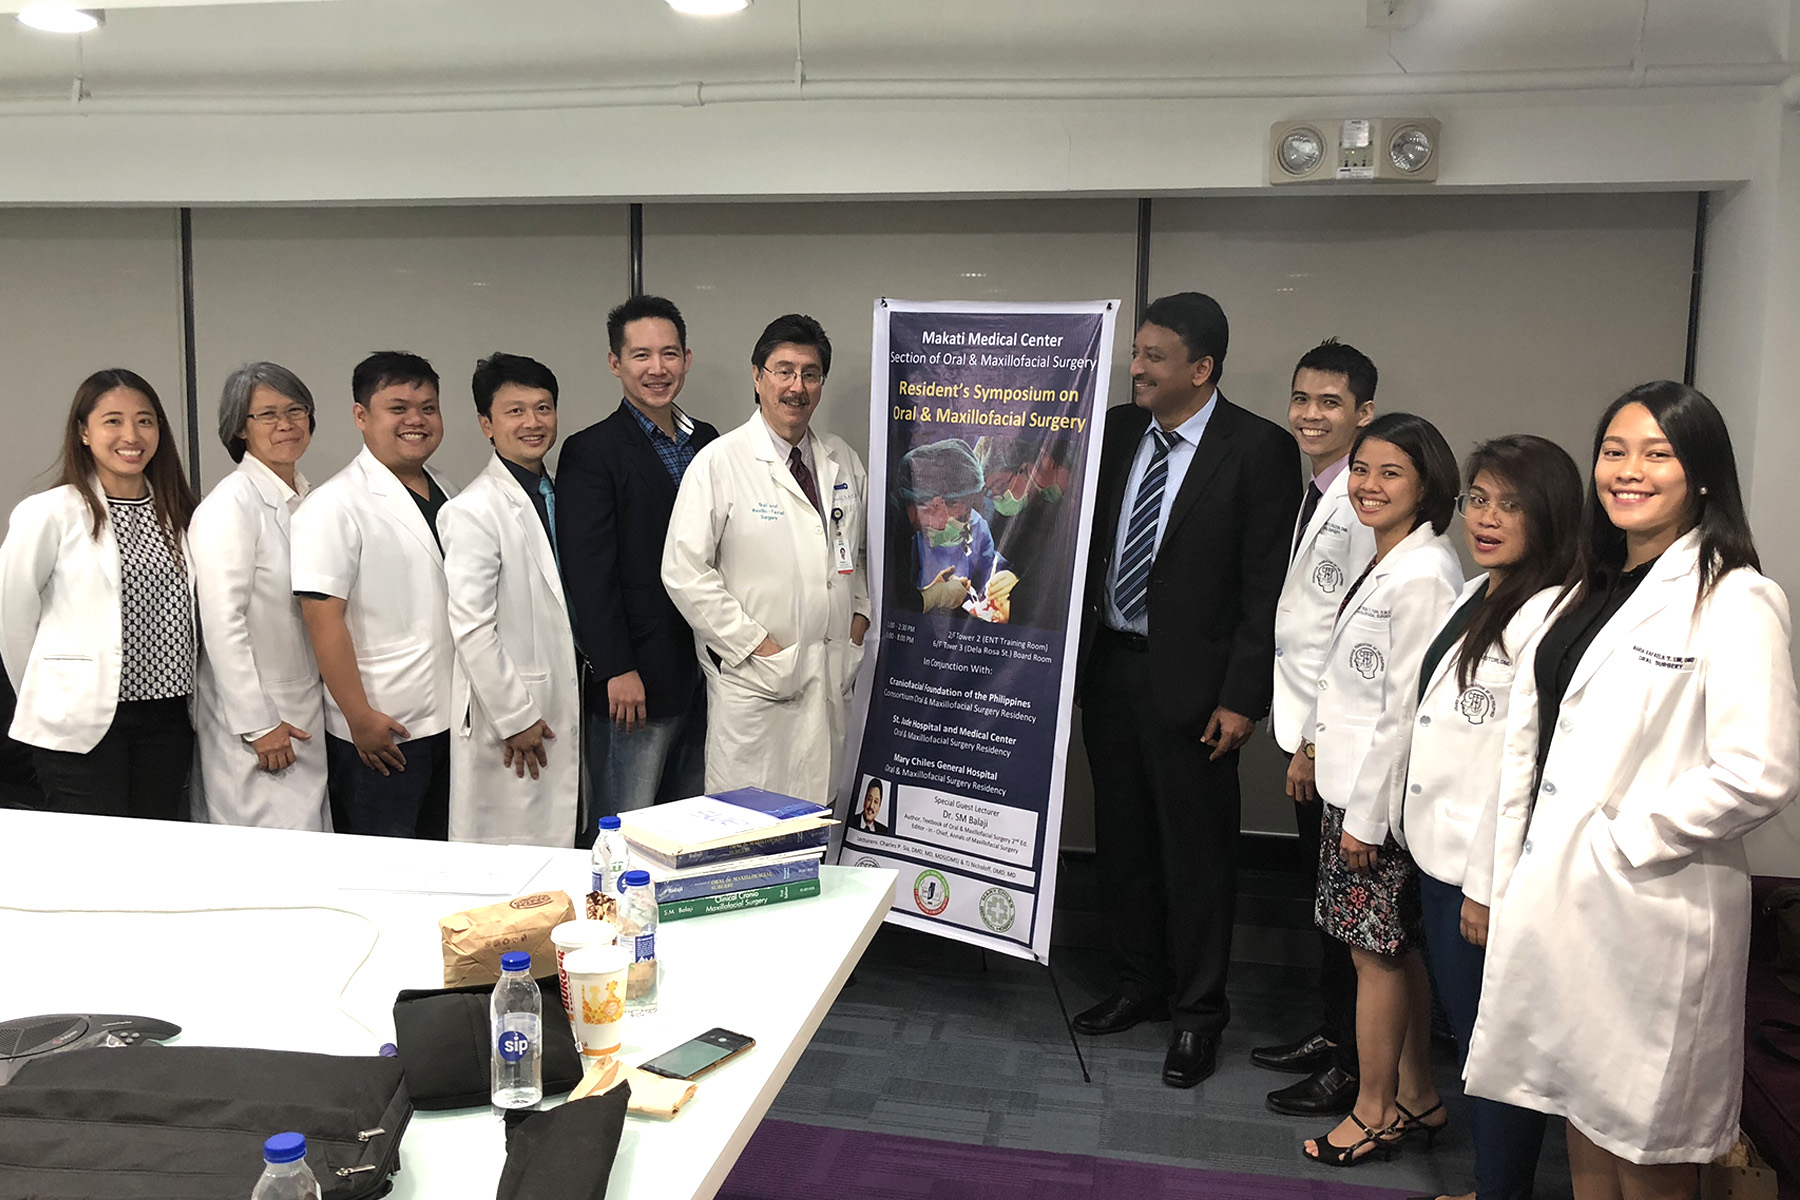 Prof SM Balaji with Dr Ted Nicoloff, Dr Charles Sia and some of the residents who attended his lecture